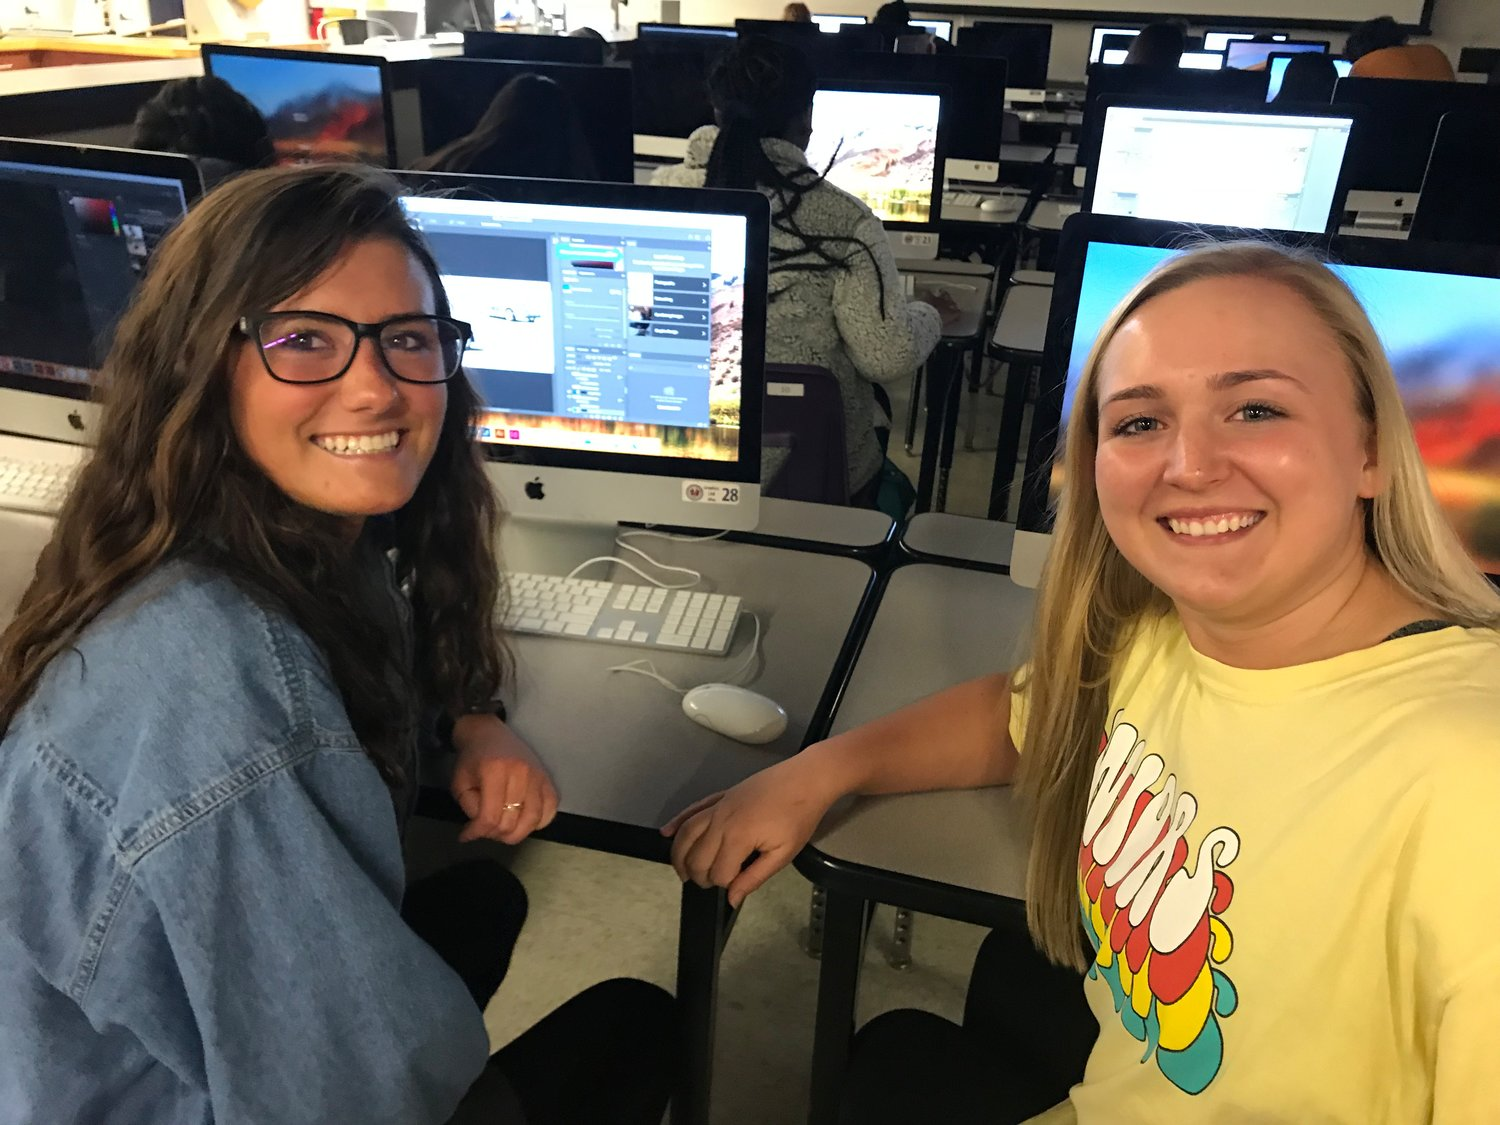 Cartersville High seniors Hattie Thompson, left, and Colbi Ballard work on creating a new design for the four patrol cars purchased last year by the Cartersville Police Department.